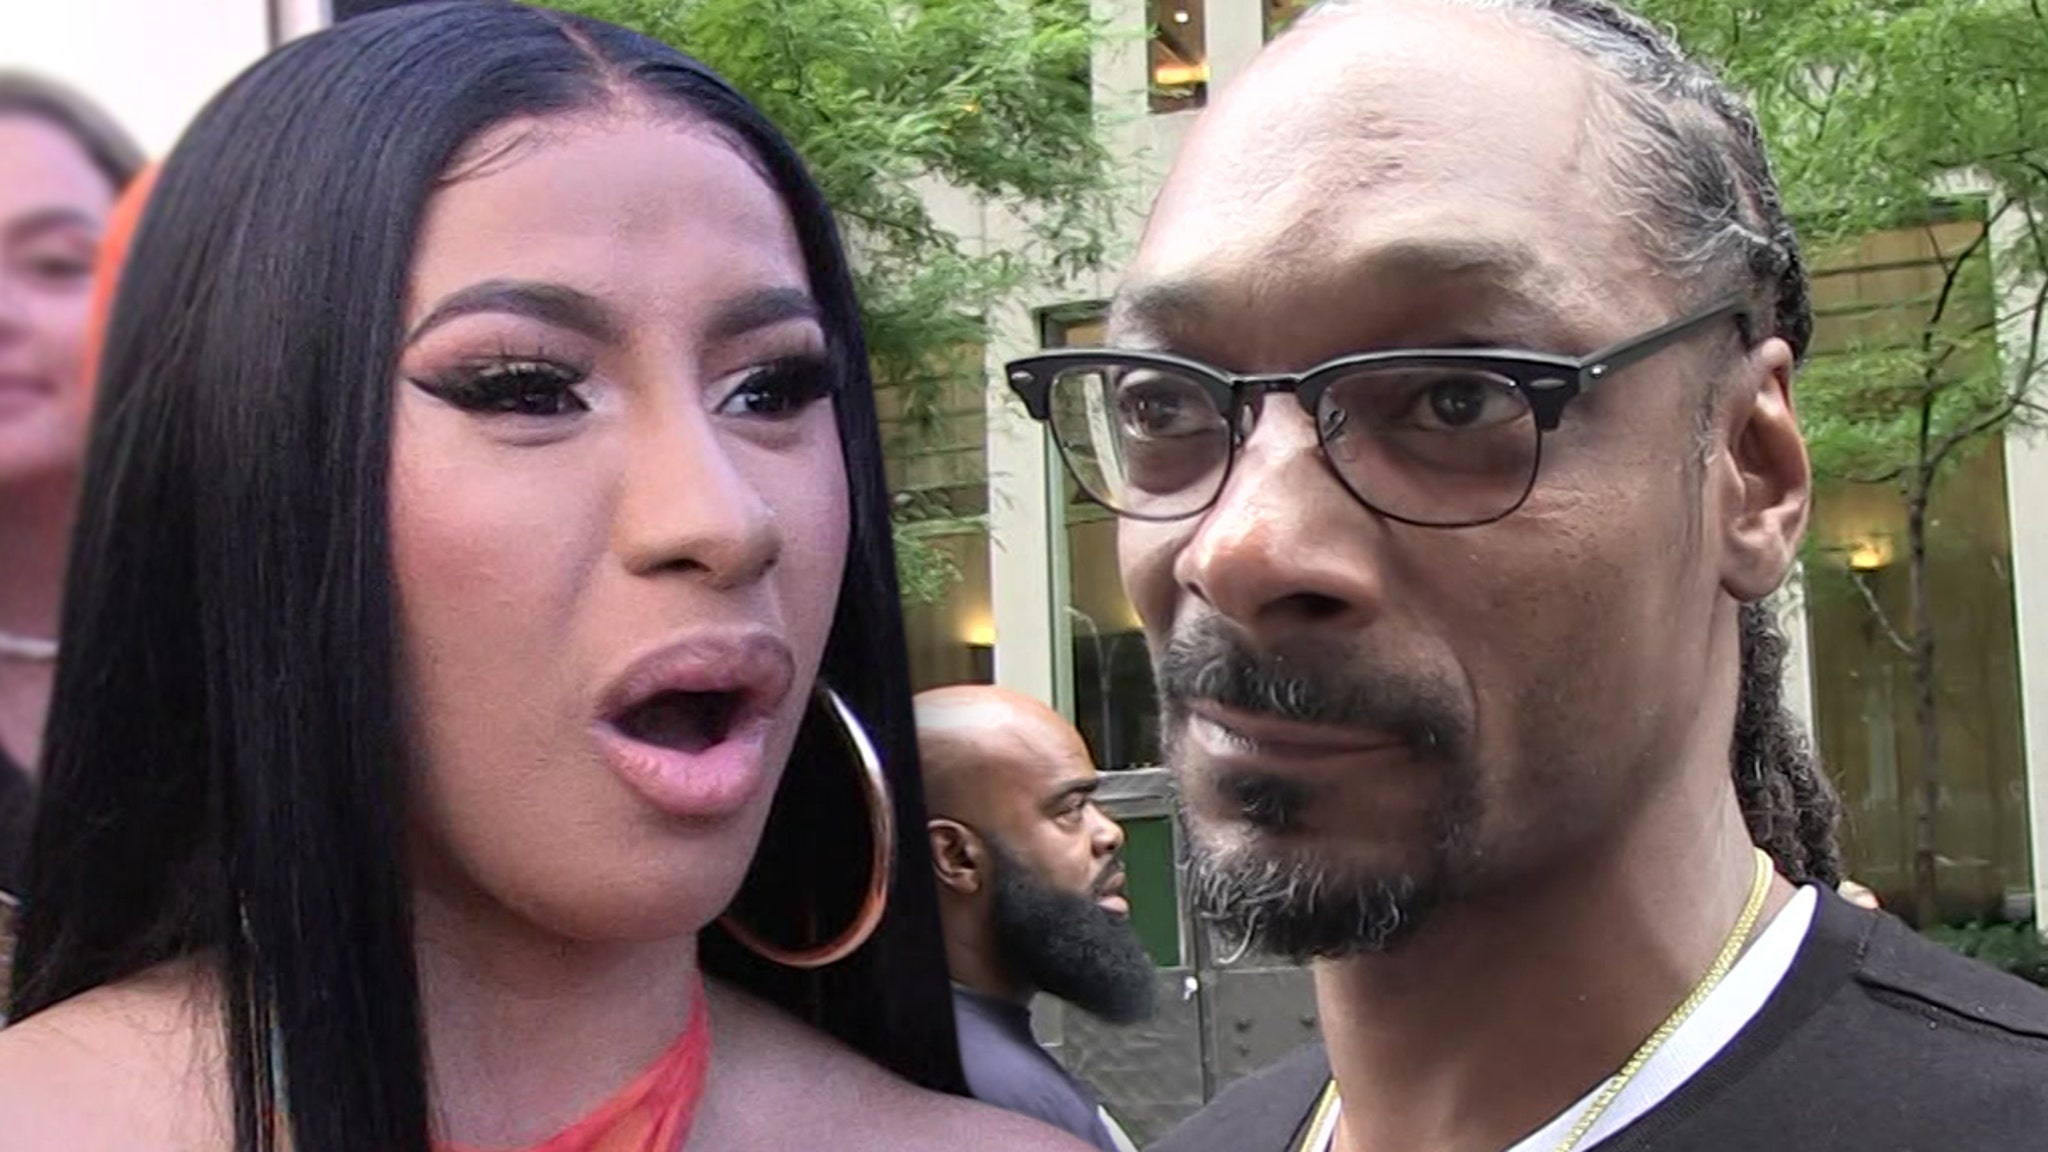 Snoop Dogg Criticizes Cardi B's 'WAP,' Leave Some Things Private